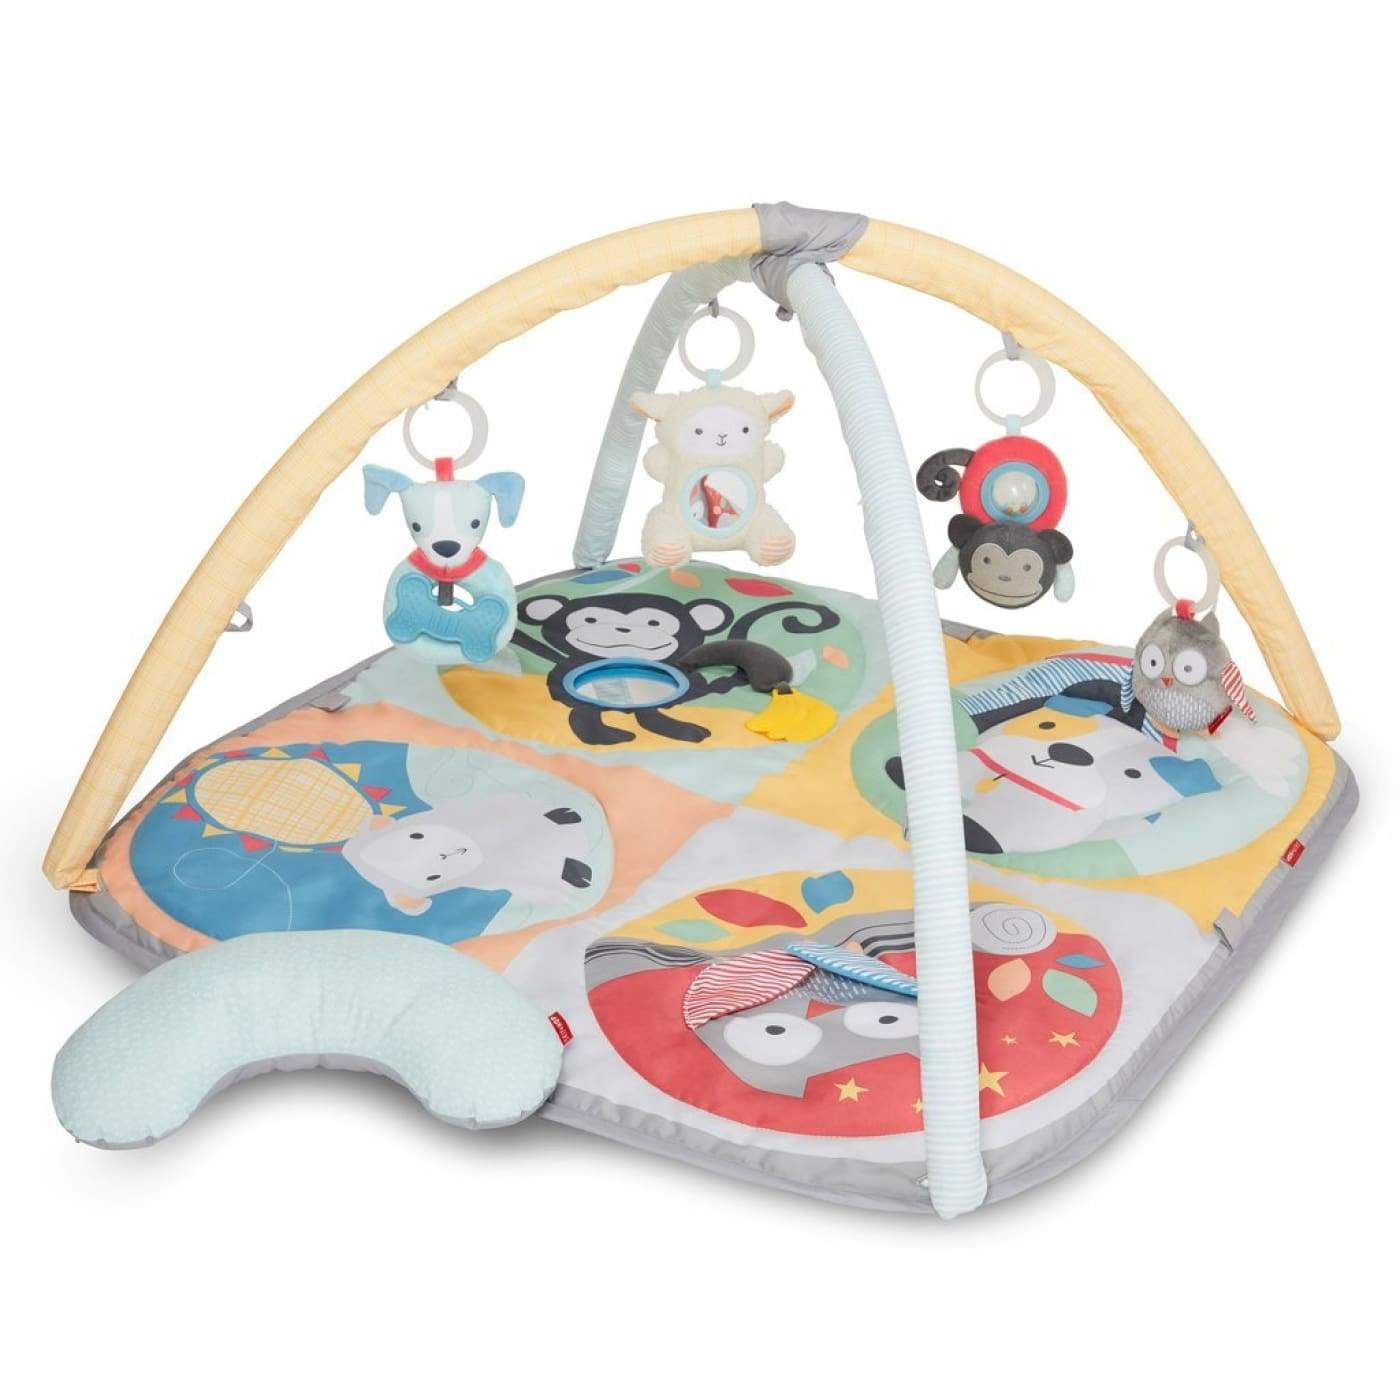 Skip Hop Hu & Hide Activity Gym - TOYS & PLAY - PLAY MATS/GYMS